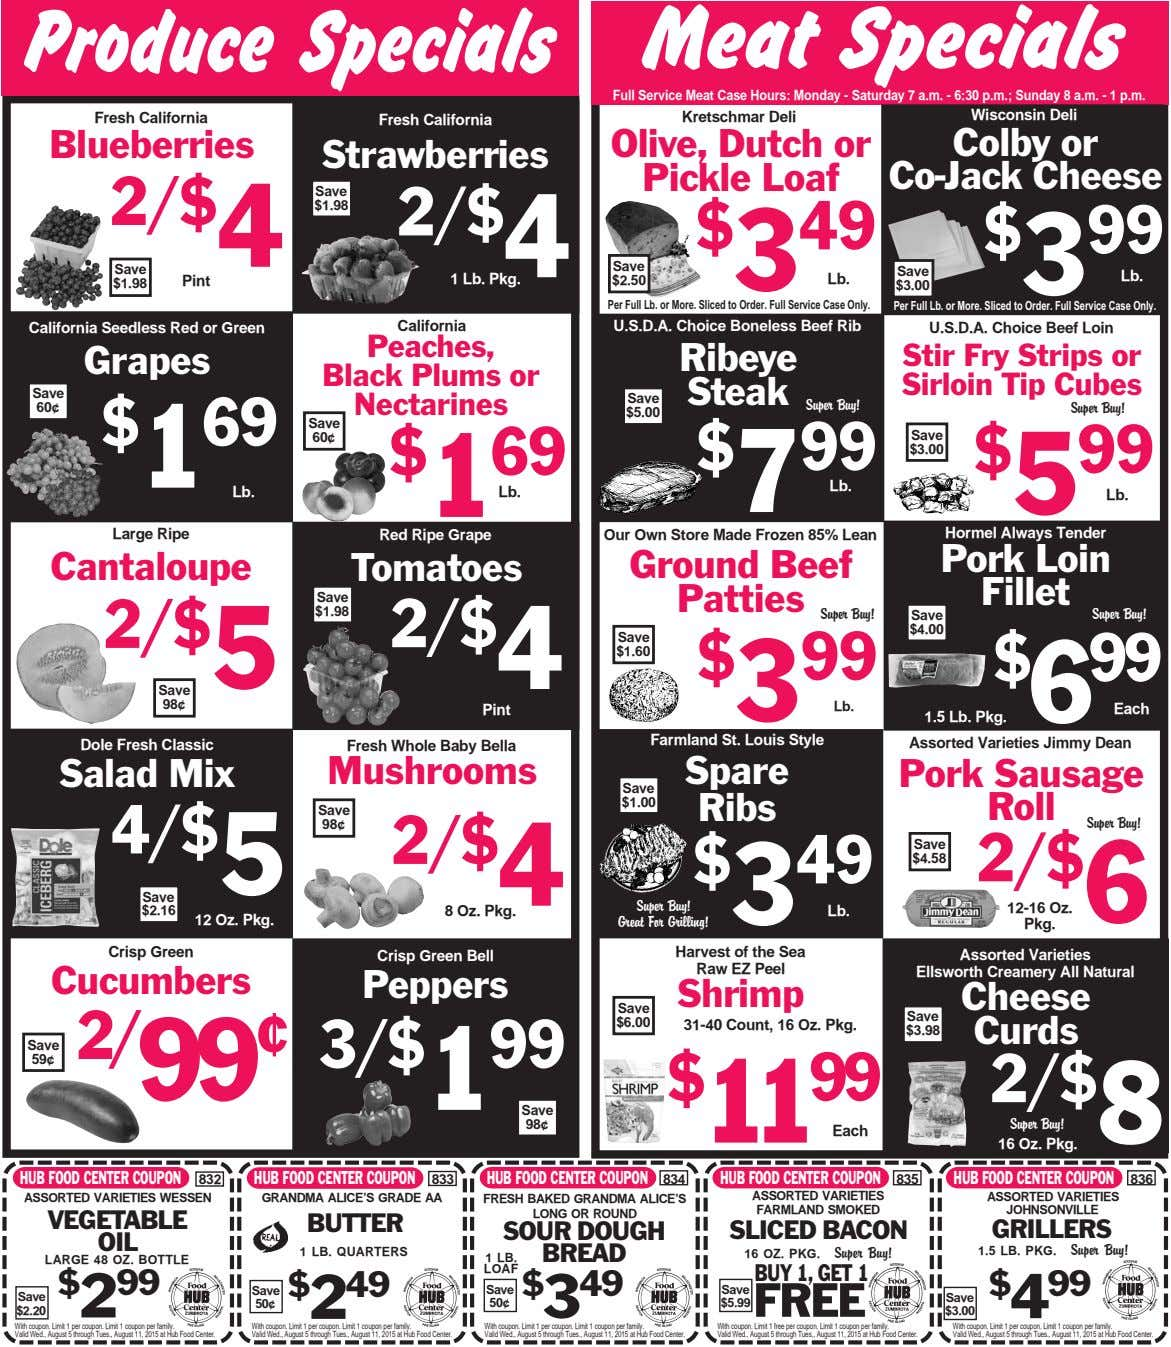 Produce Specials Meat Specials Full Service Meat Case Hours: Monday - Saturday 7 a.m. -